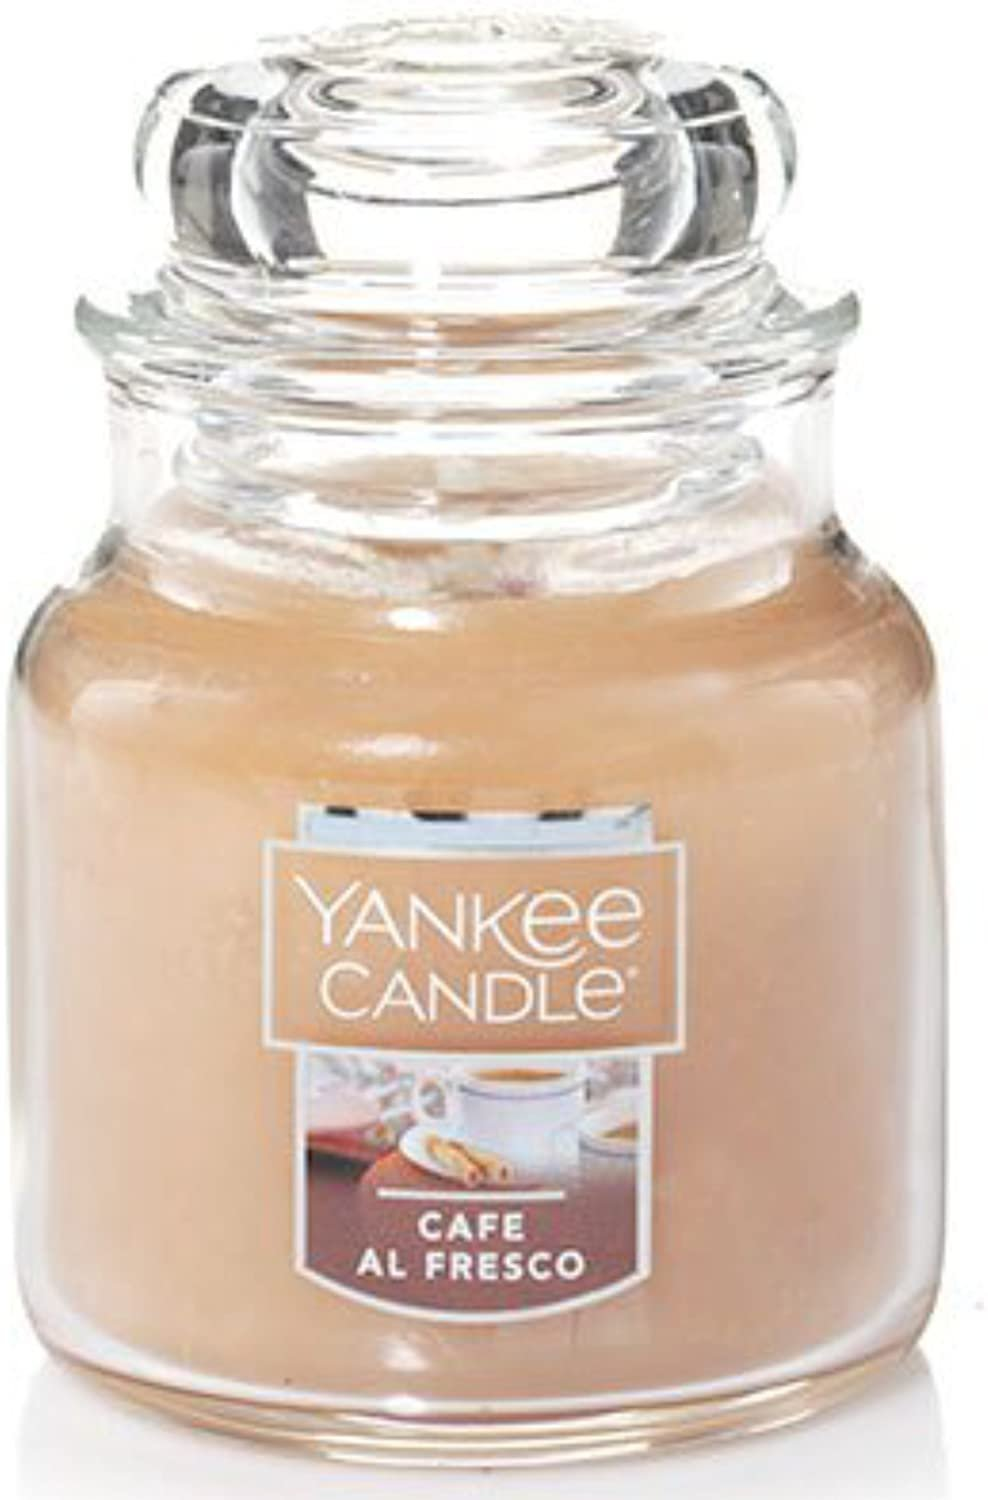 Primary image for Yankee Candle Cafe Al Fresco Small Jar Candle 3.7 oz